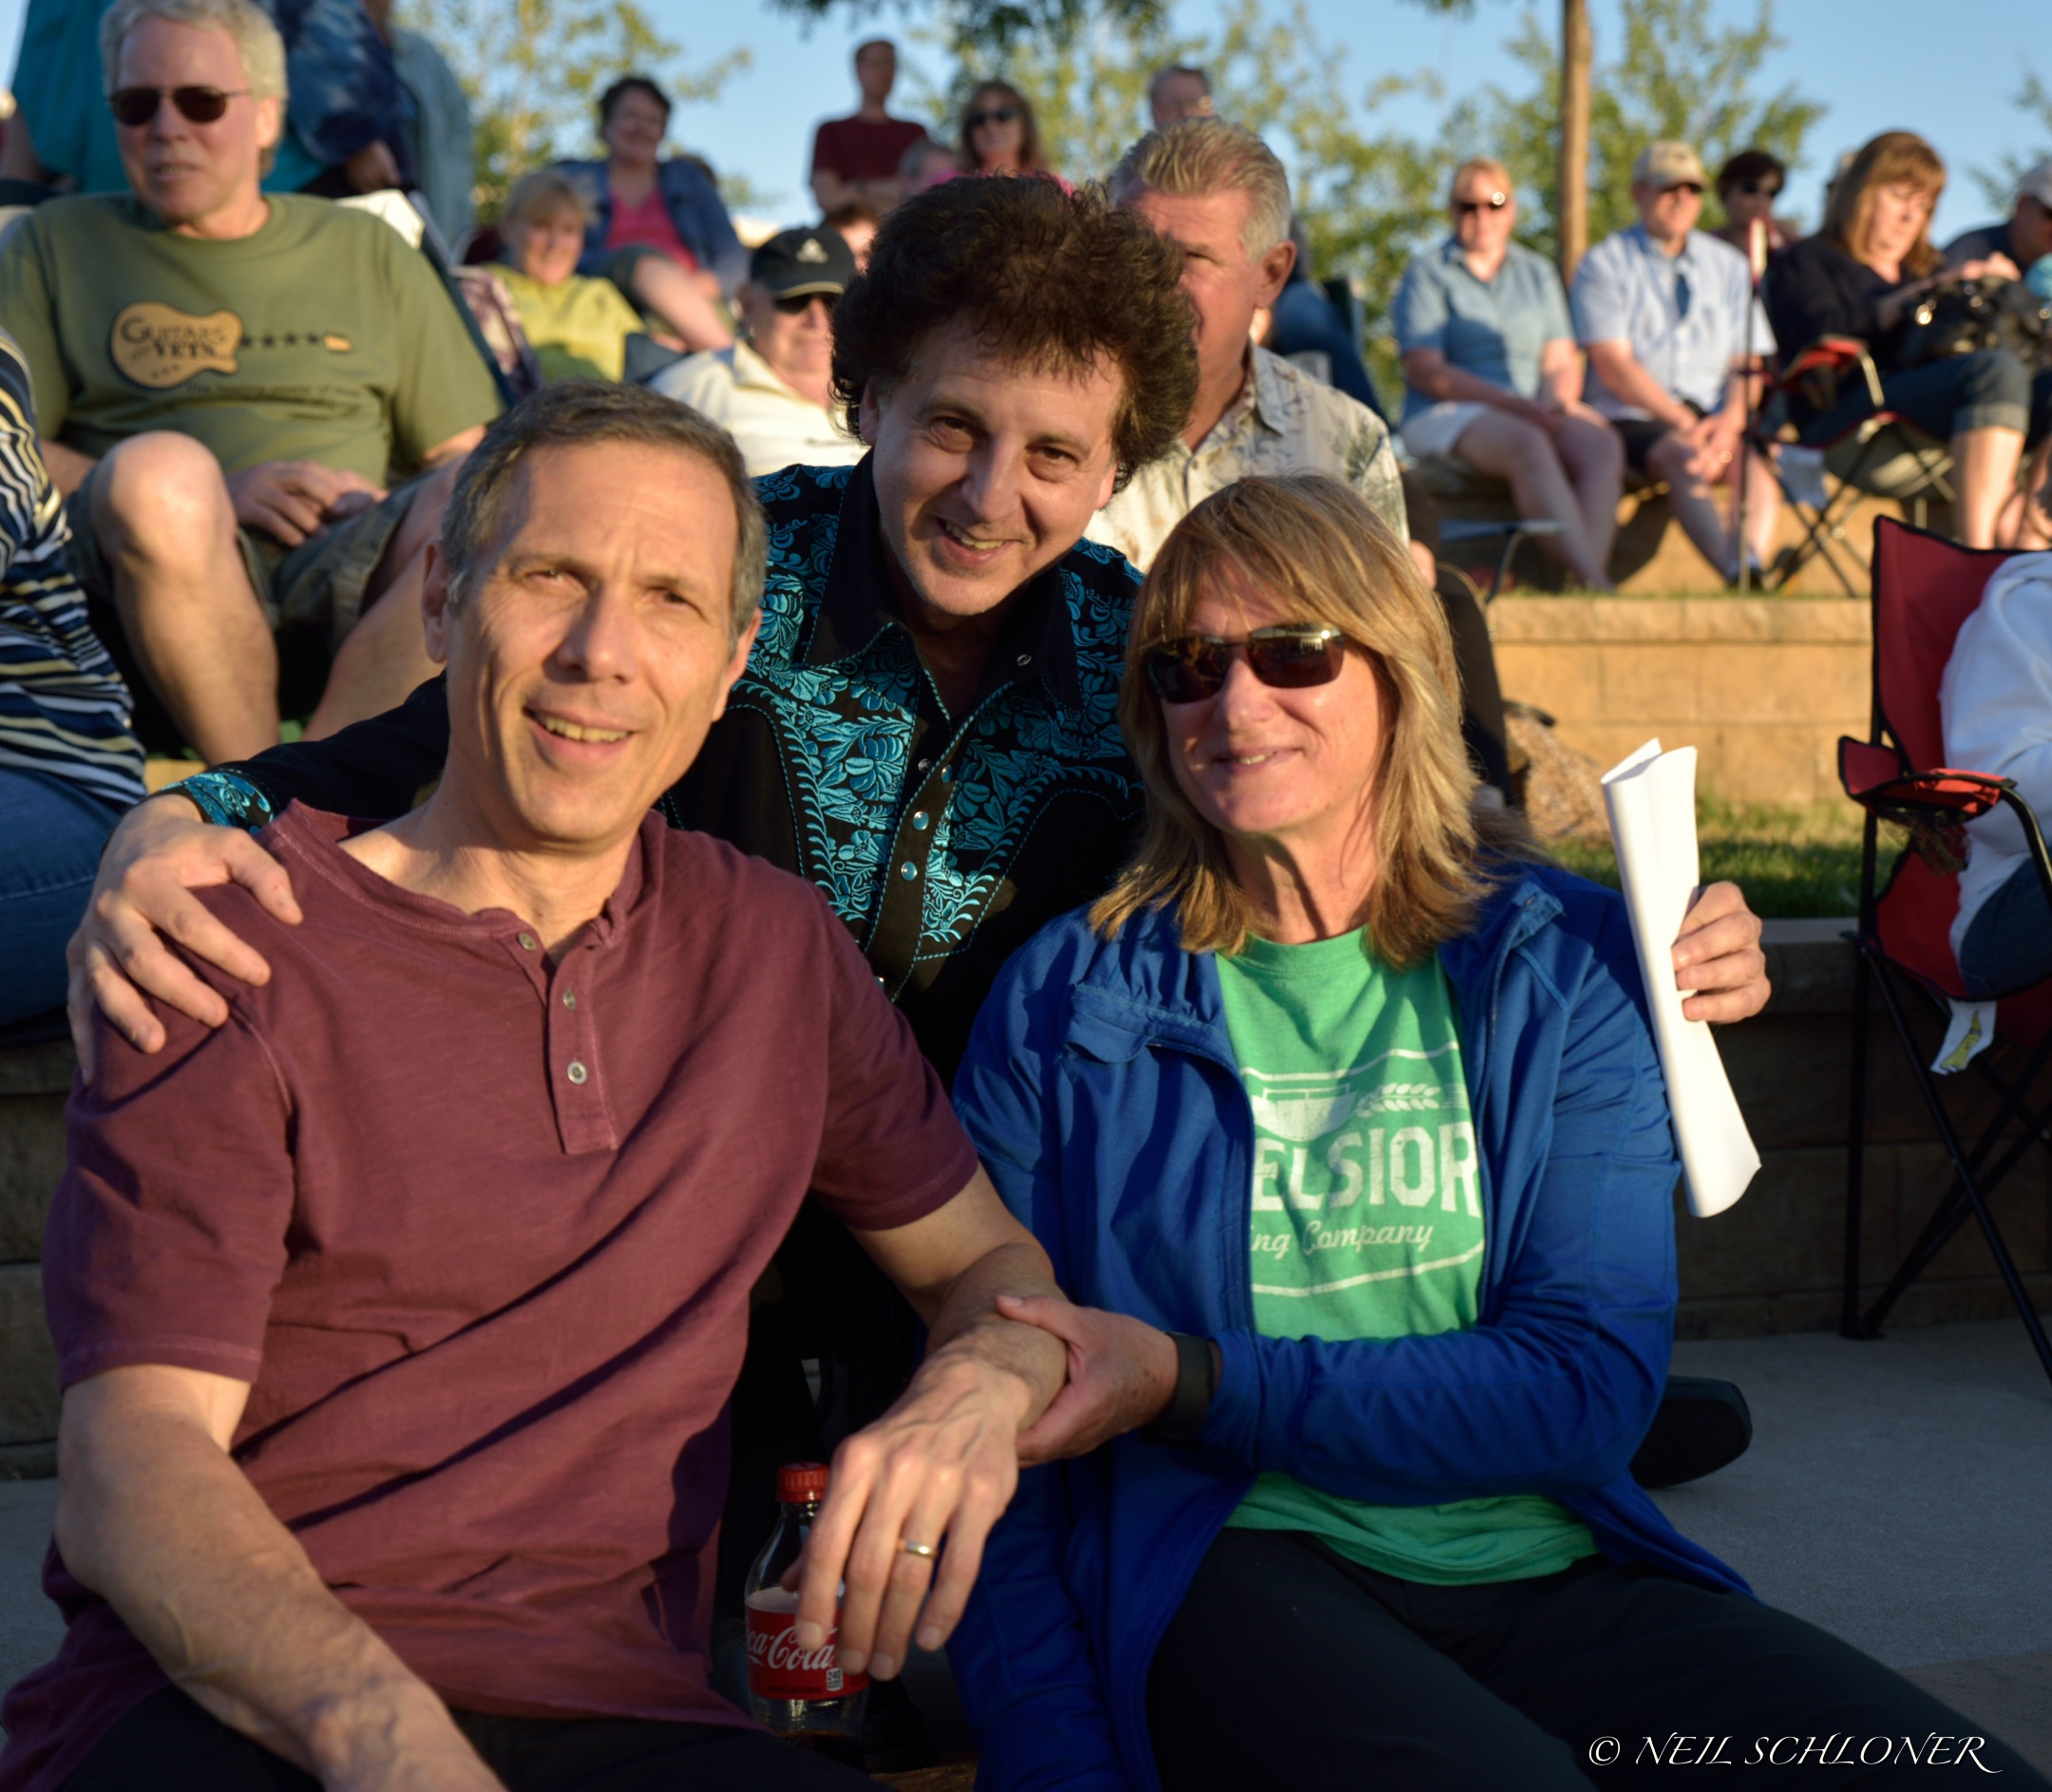 Gary Lopac, Magic Marc and Lois Sortedahl / Town Green Amphitheatre / Maple Grove, Minnesota / June 15th, 2015